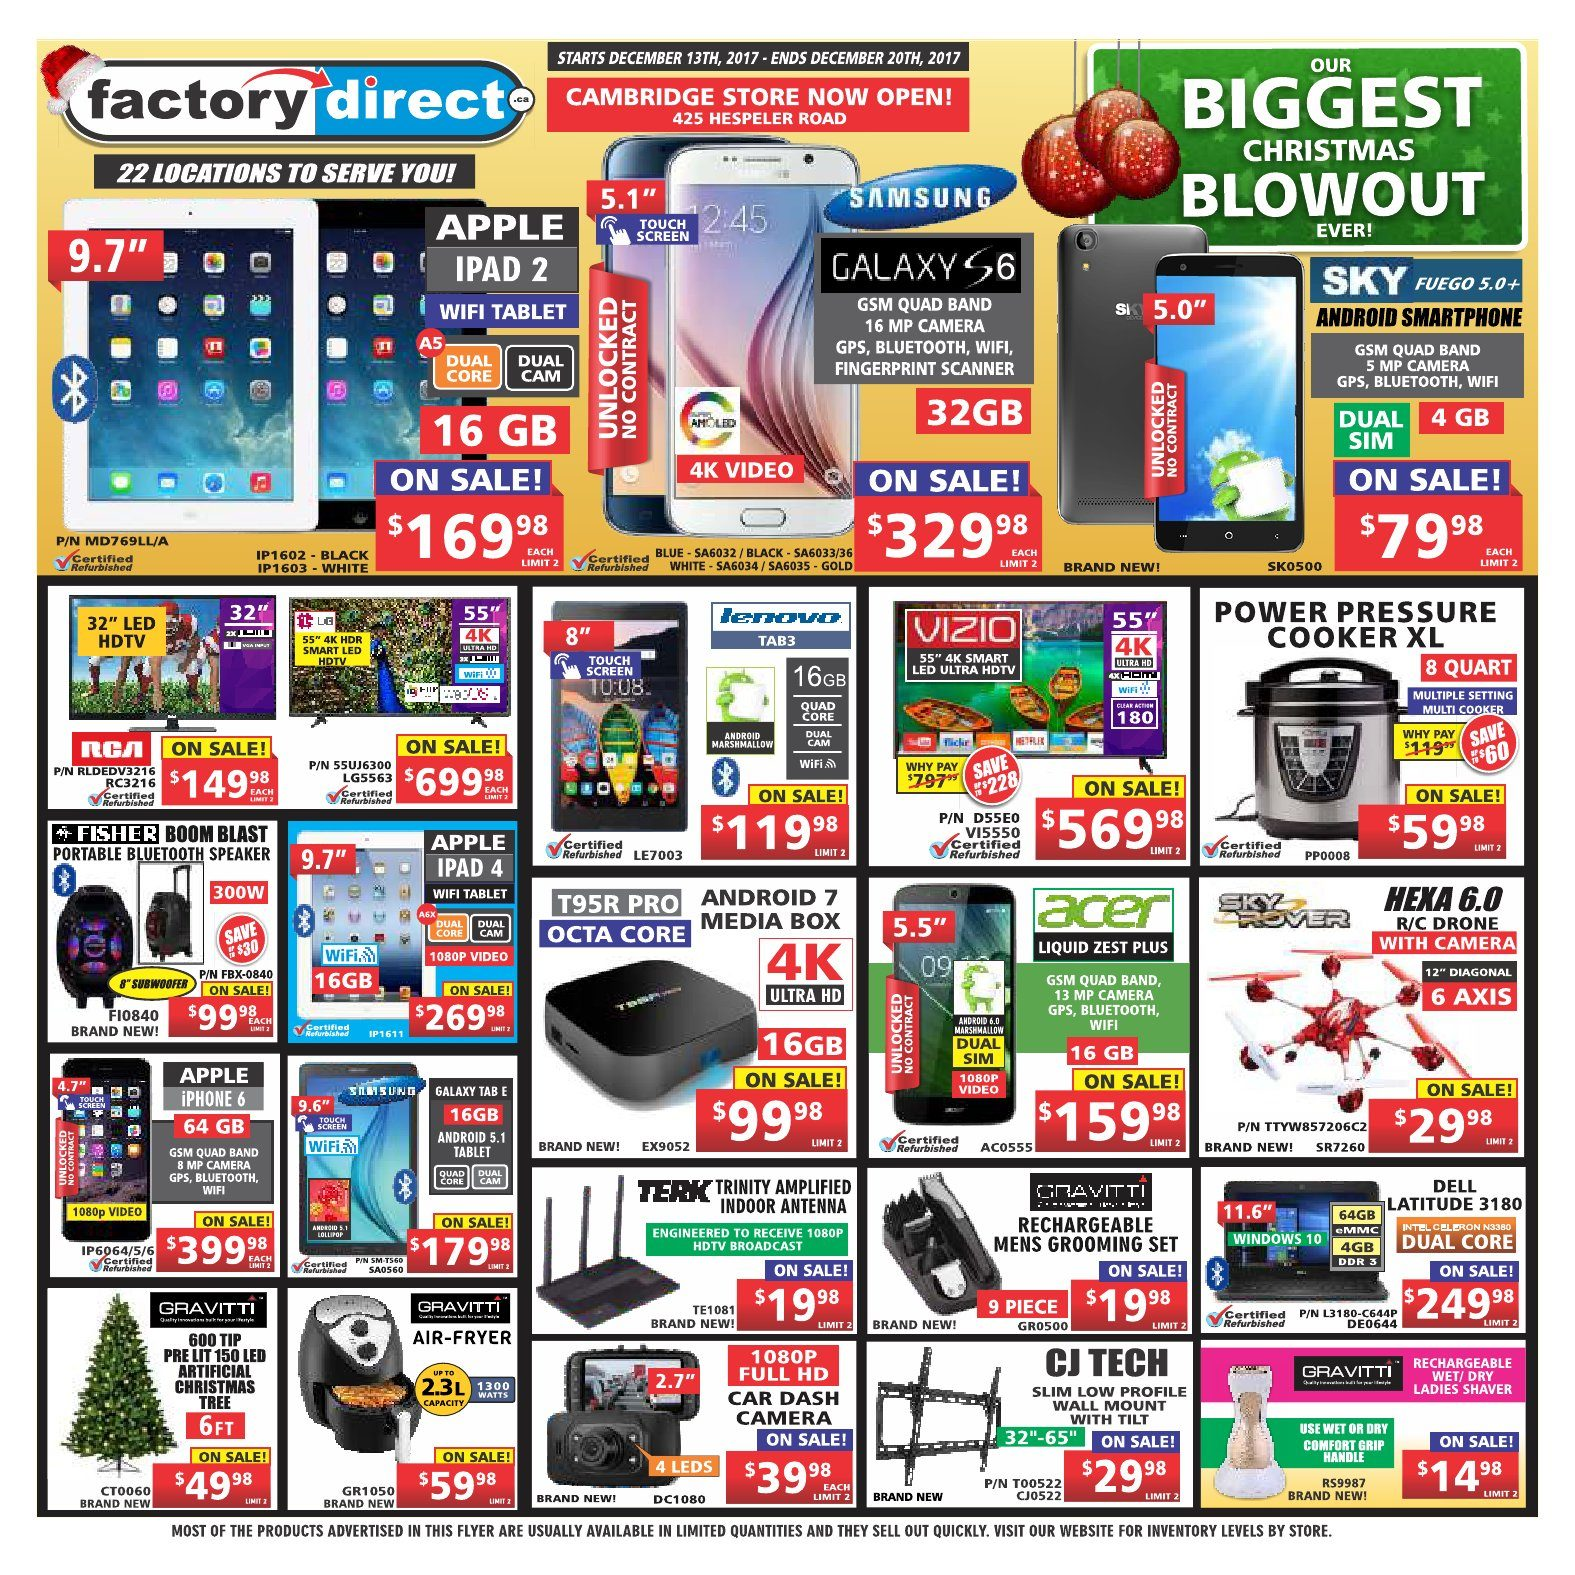 Factory Direct Weekly Flyer - Weekly - Our Biggest Christmas